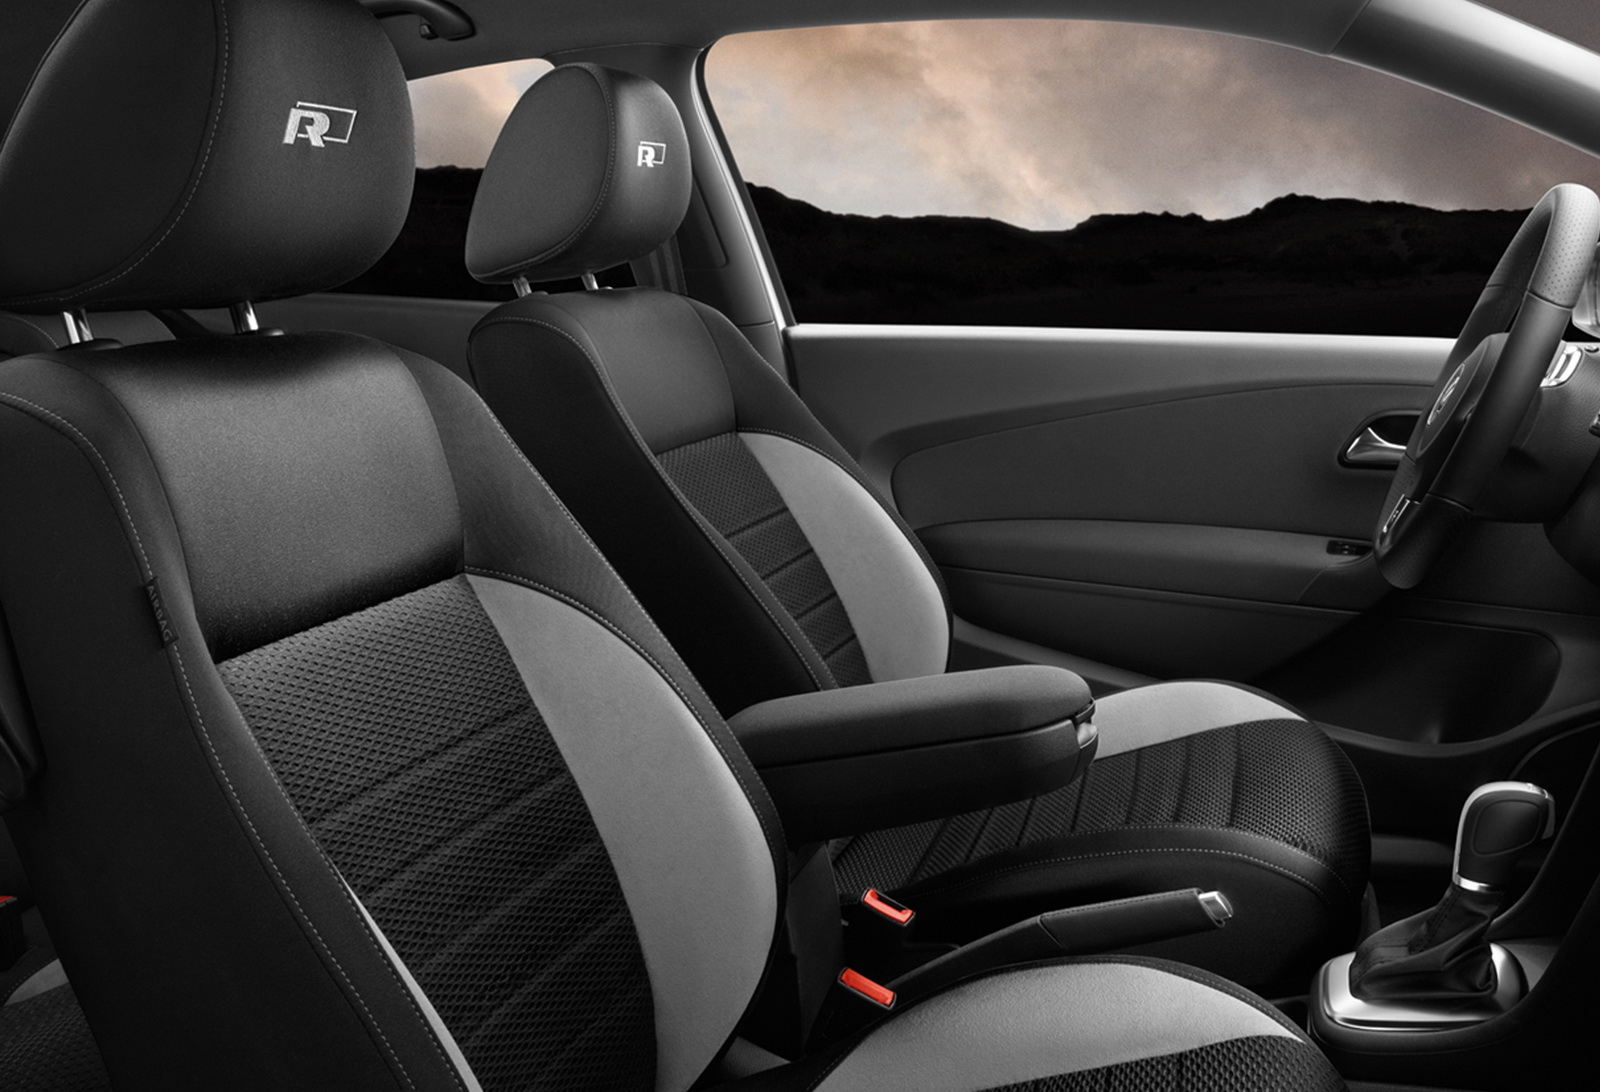 Volkswagen Polo R Line Adding More Style To The